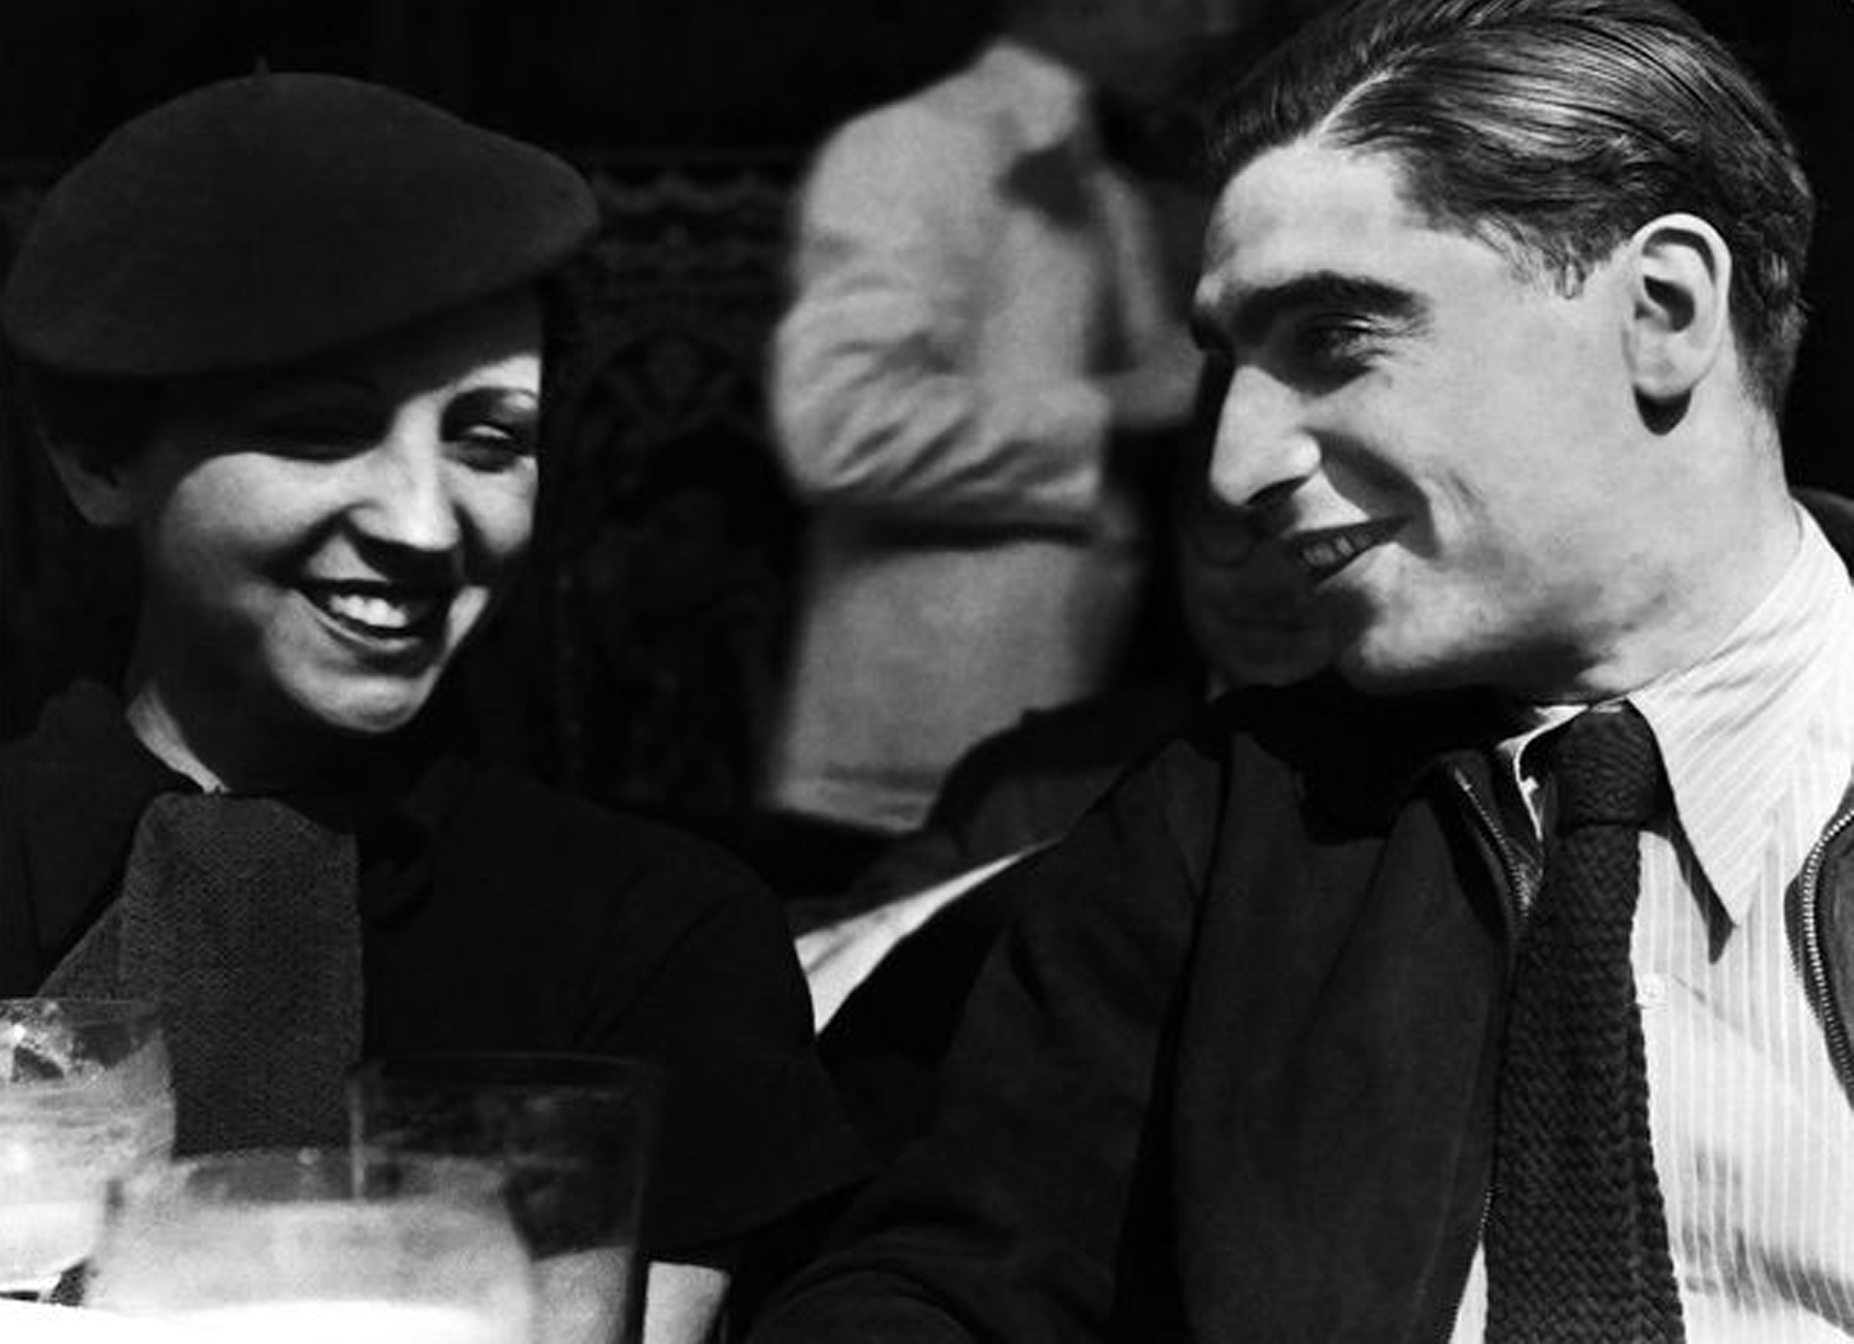 Photo Gerda Taro et Robert Capa